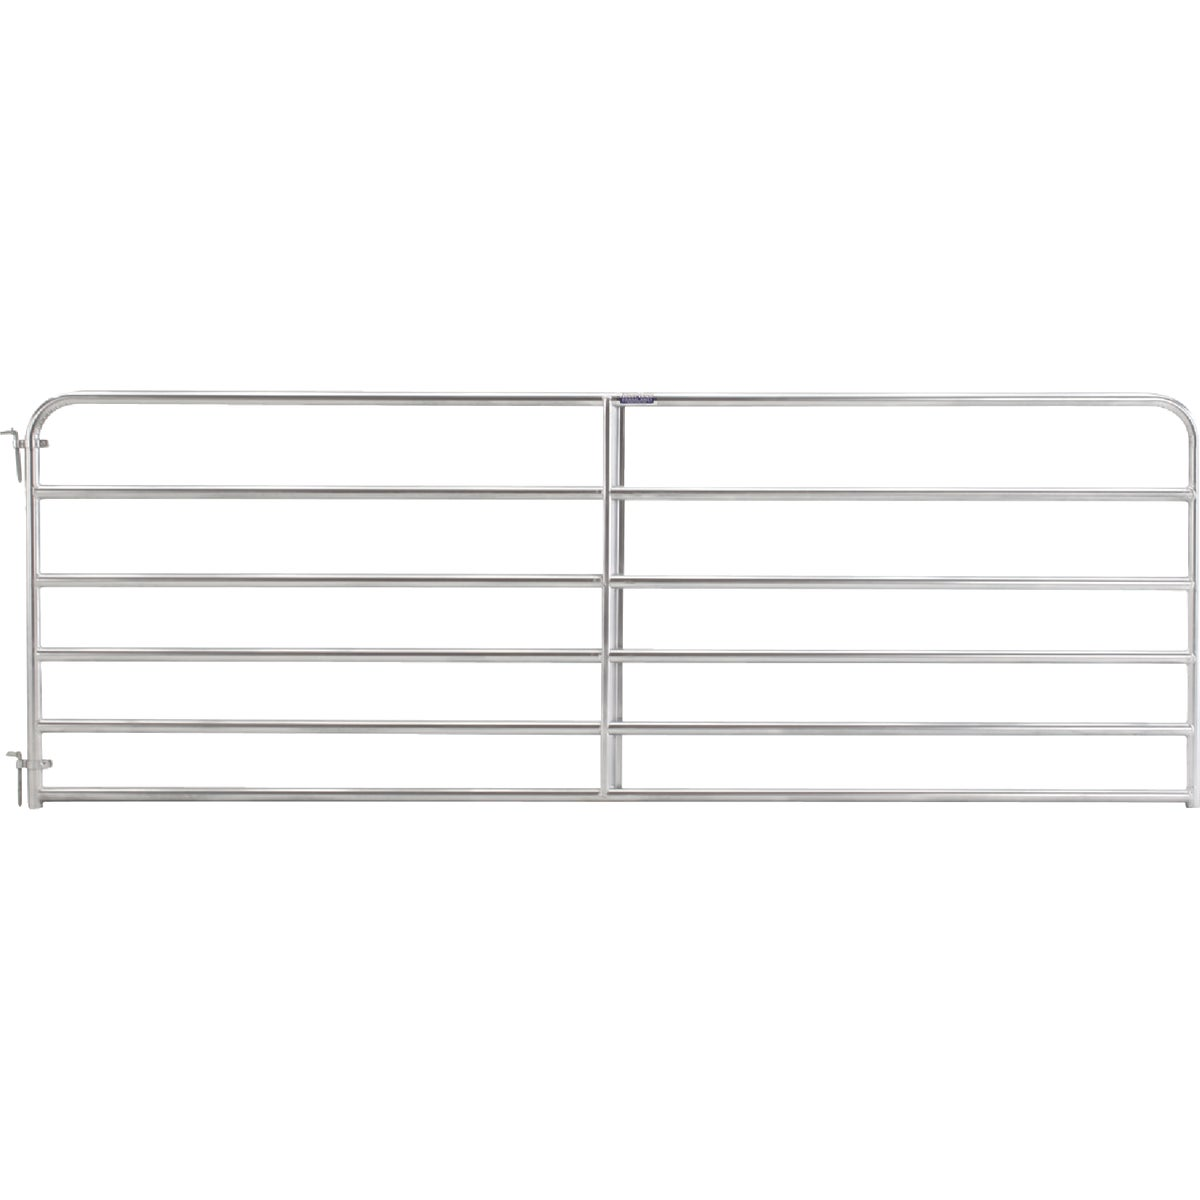 12' 19GA GLV TUBE GATE - 6GG12 by Tarter Llc